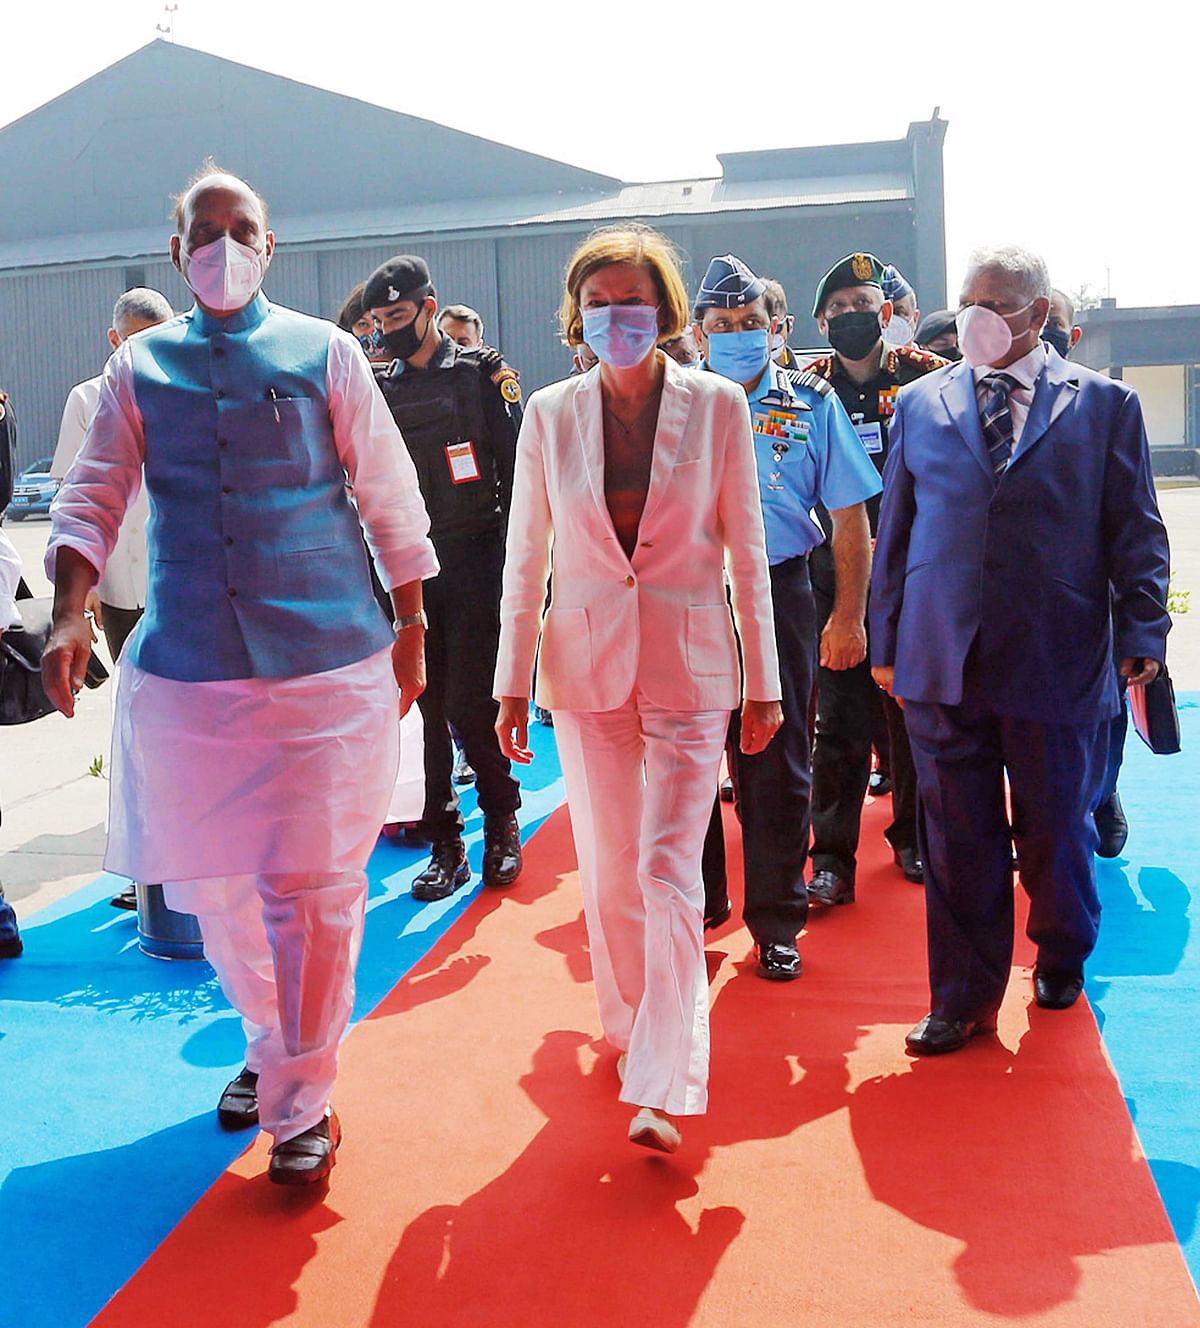 India's Defence Minister Rajnath Singh along with French Minister of Armed Forces Florence Parly. The discussions in diplomatic circles of a Quad-plus arrangement are beginning to gather some force.